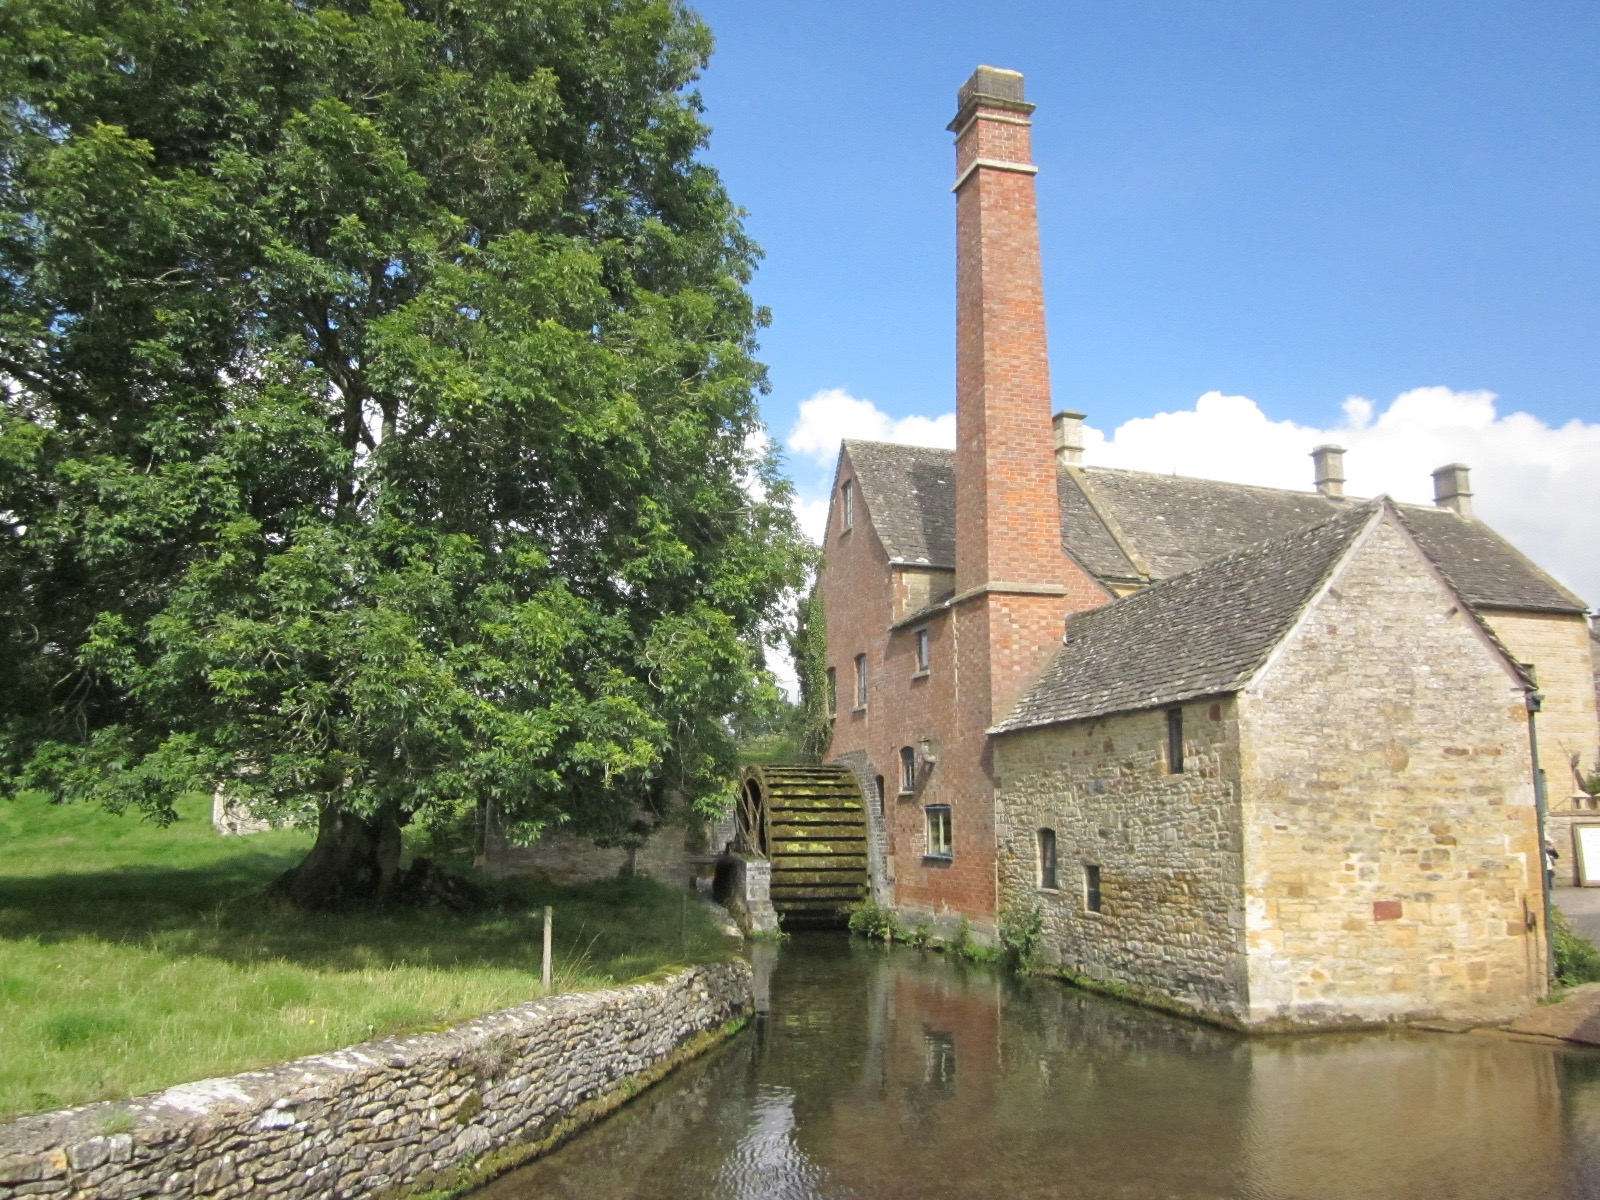 Lower Slaughter, the old mill